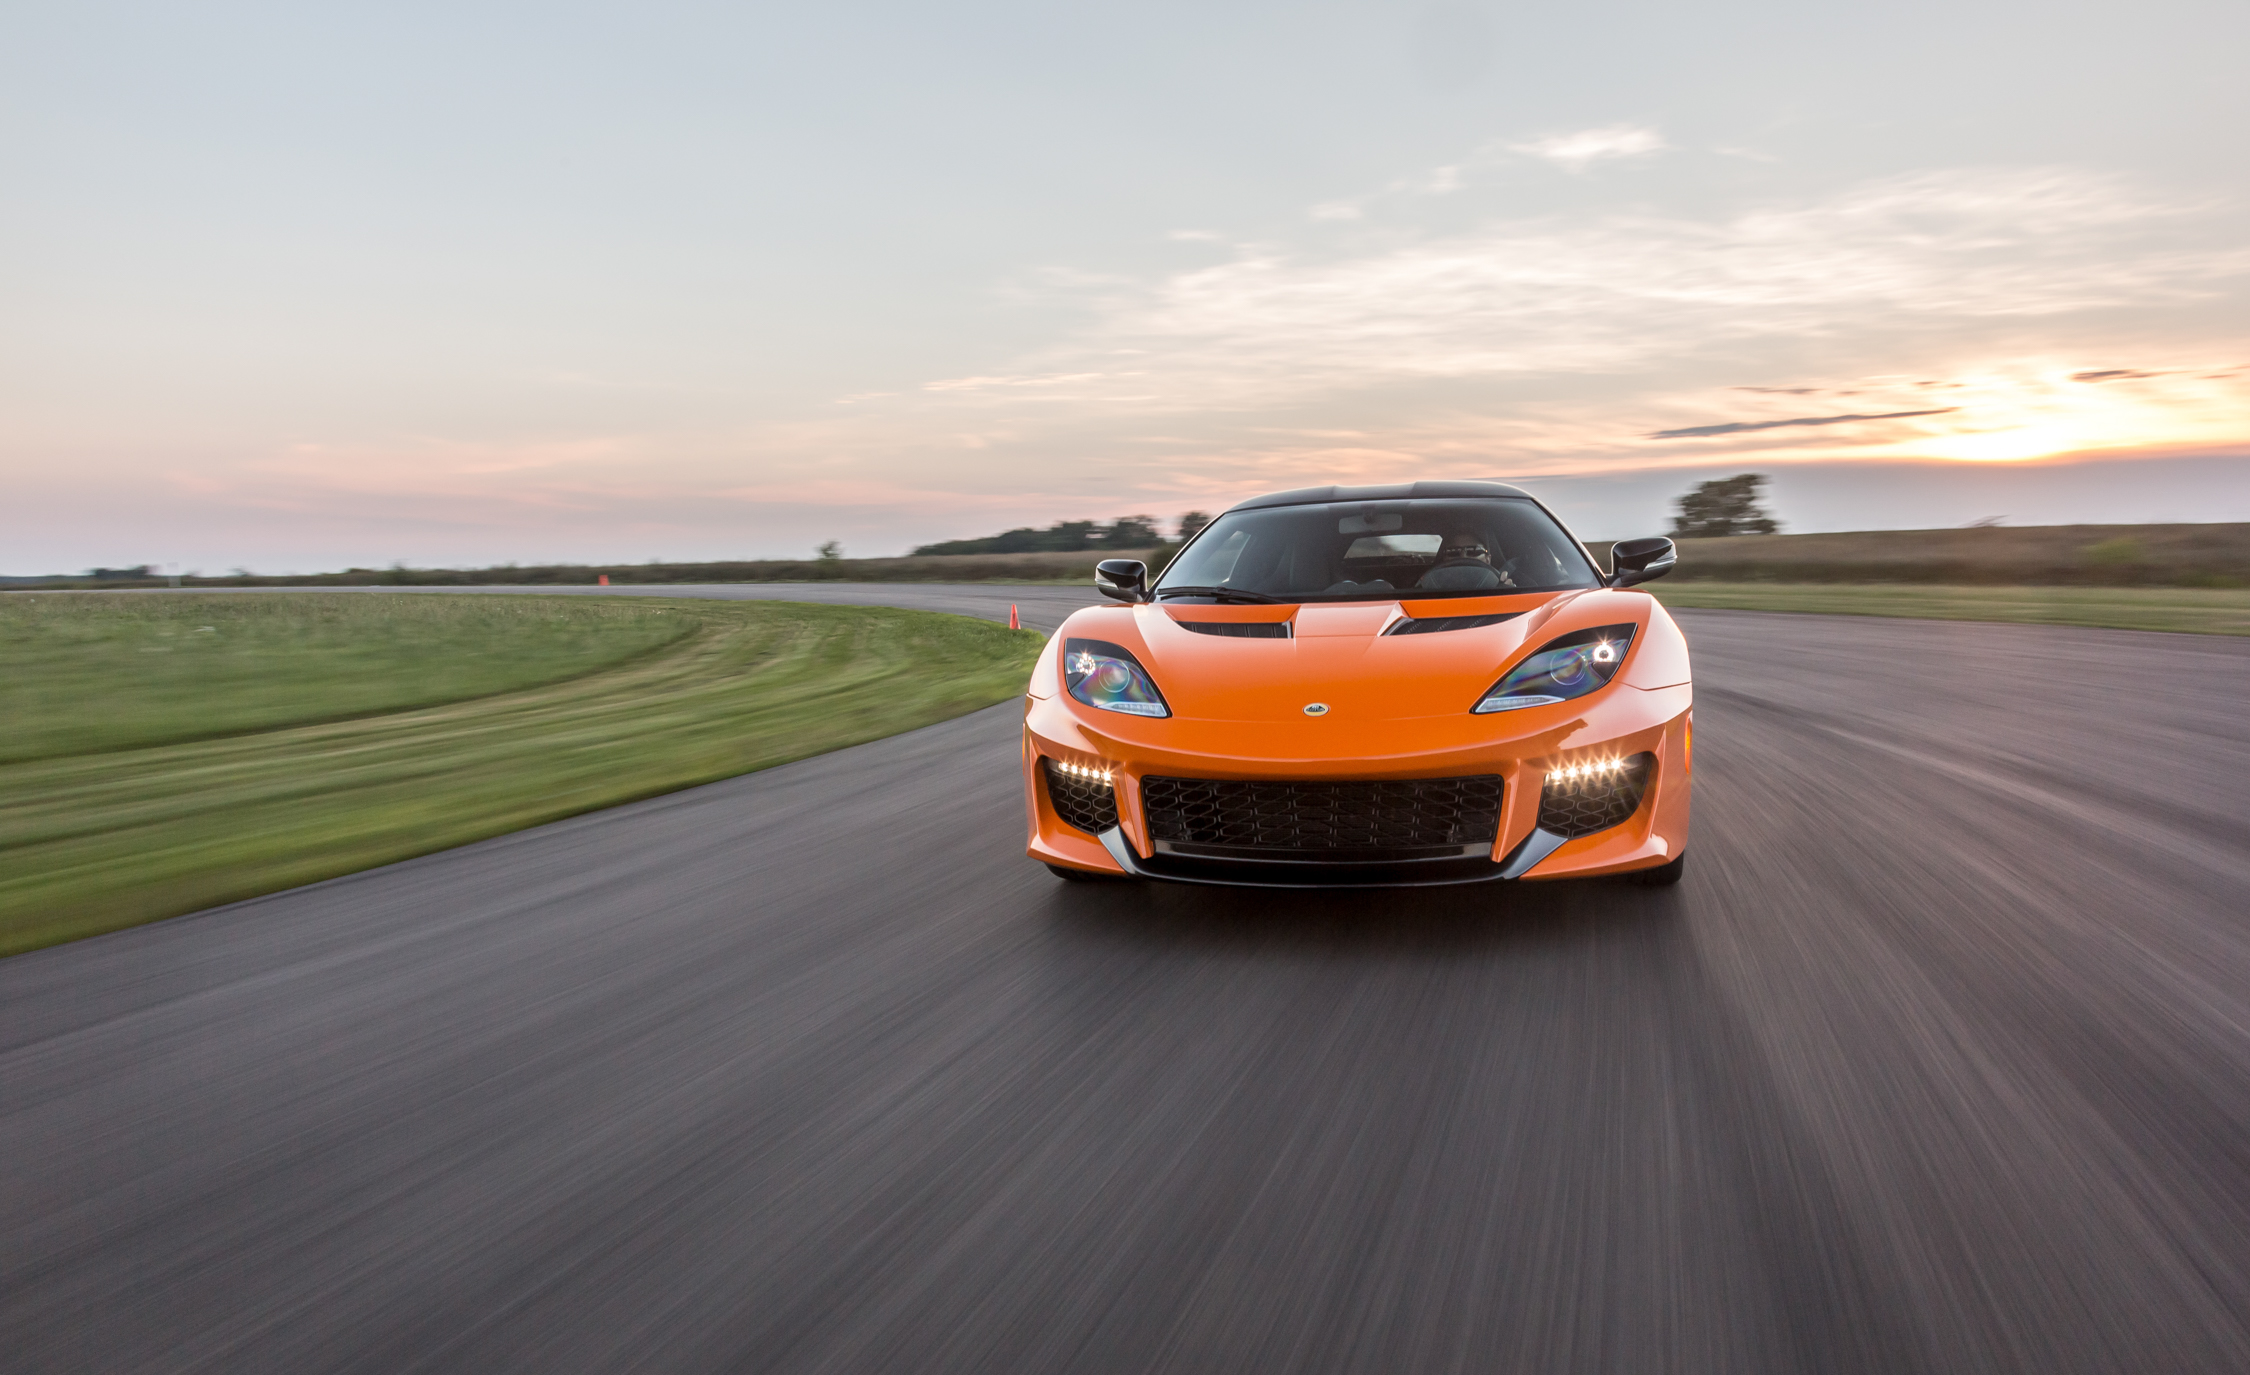 2017 Lotus Evora 400 Circuit Test Front View (View 7 of 12)